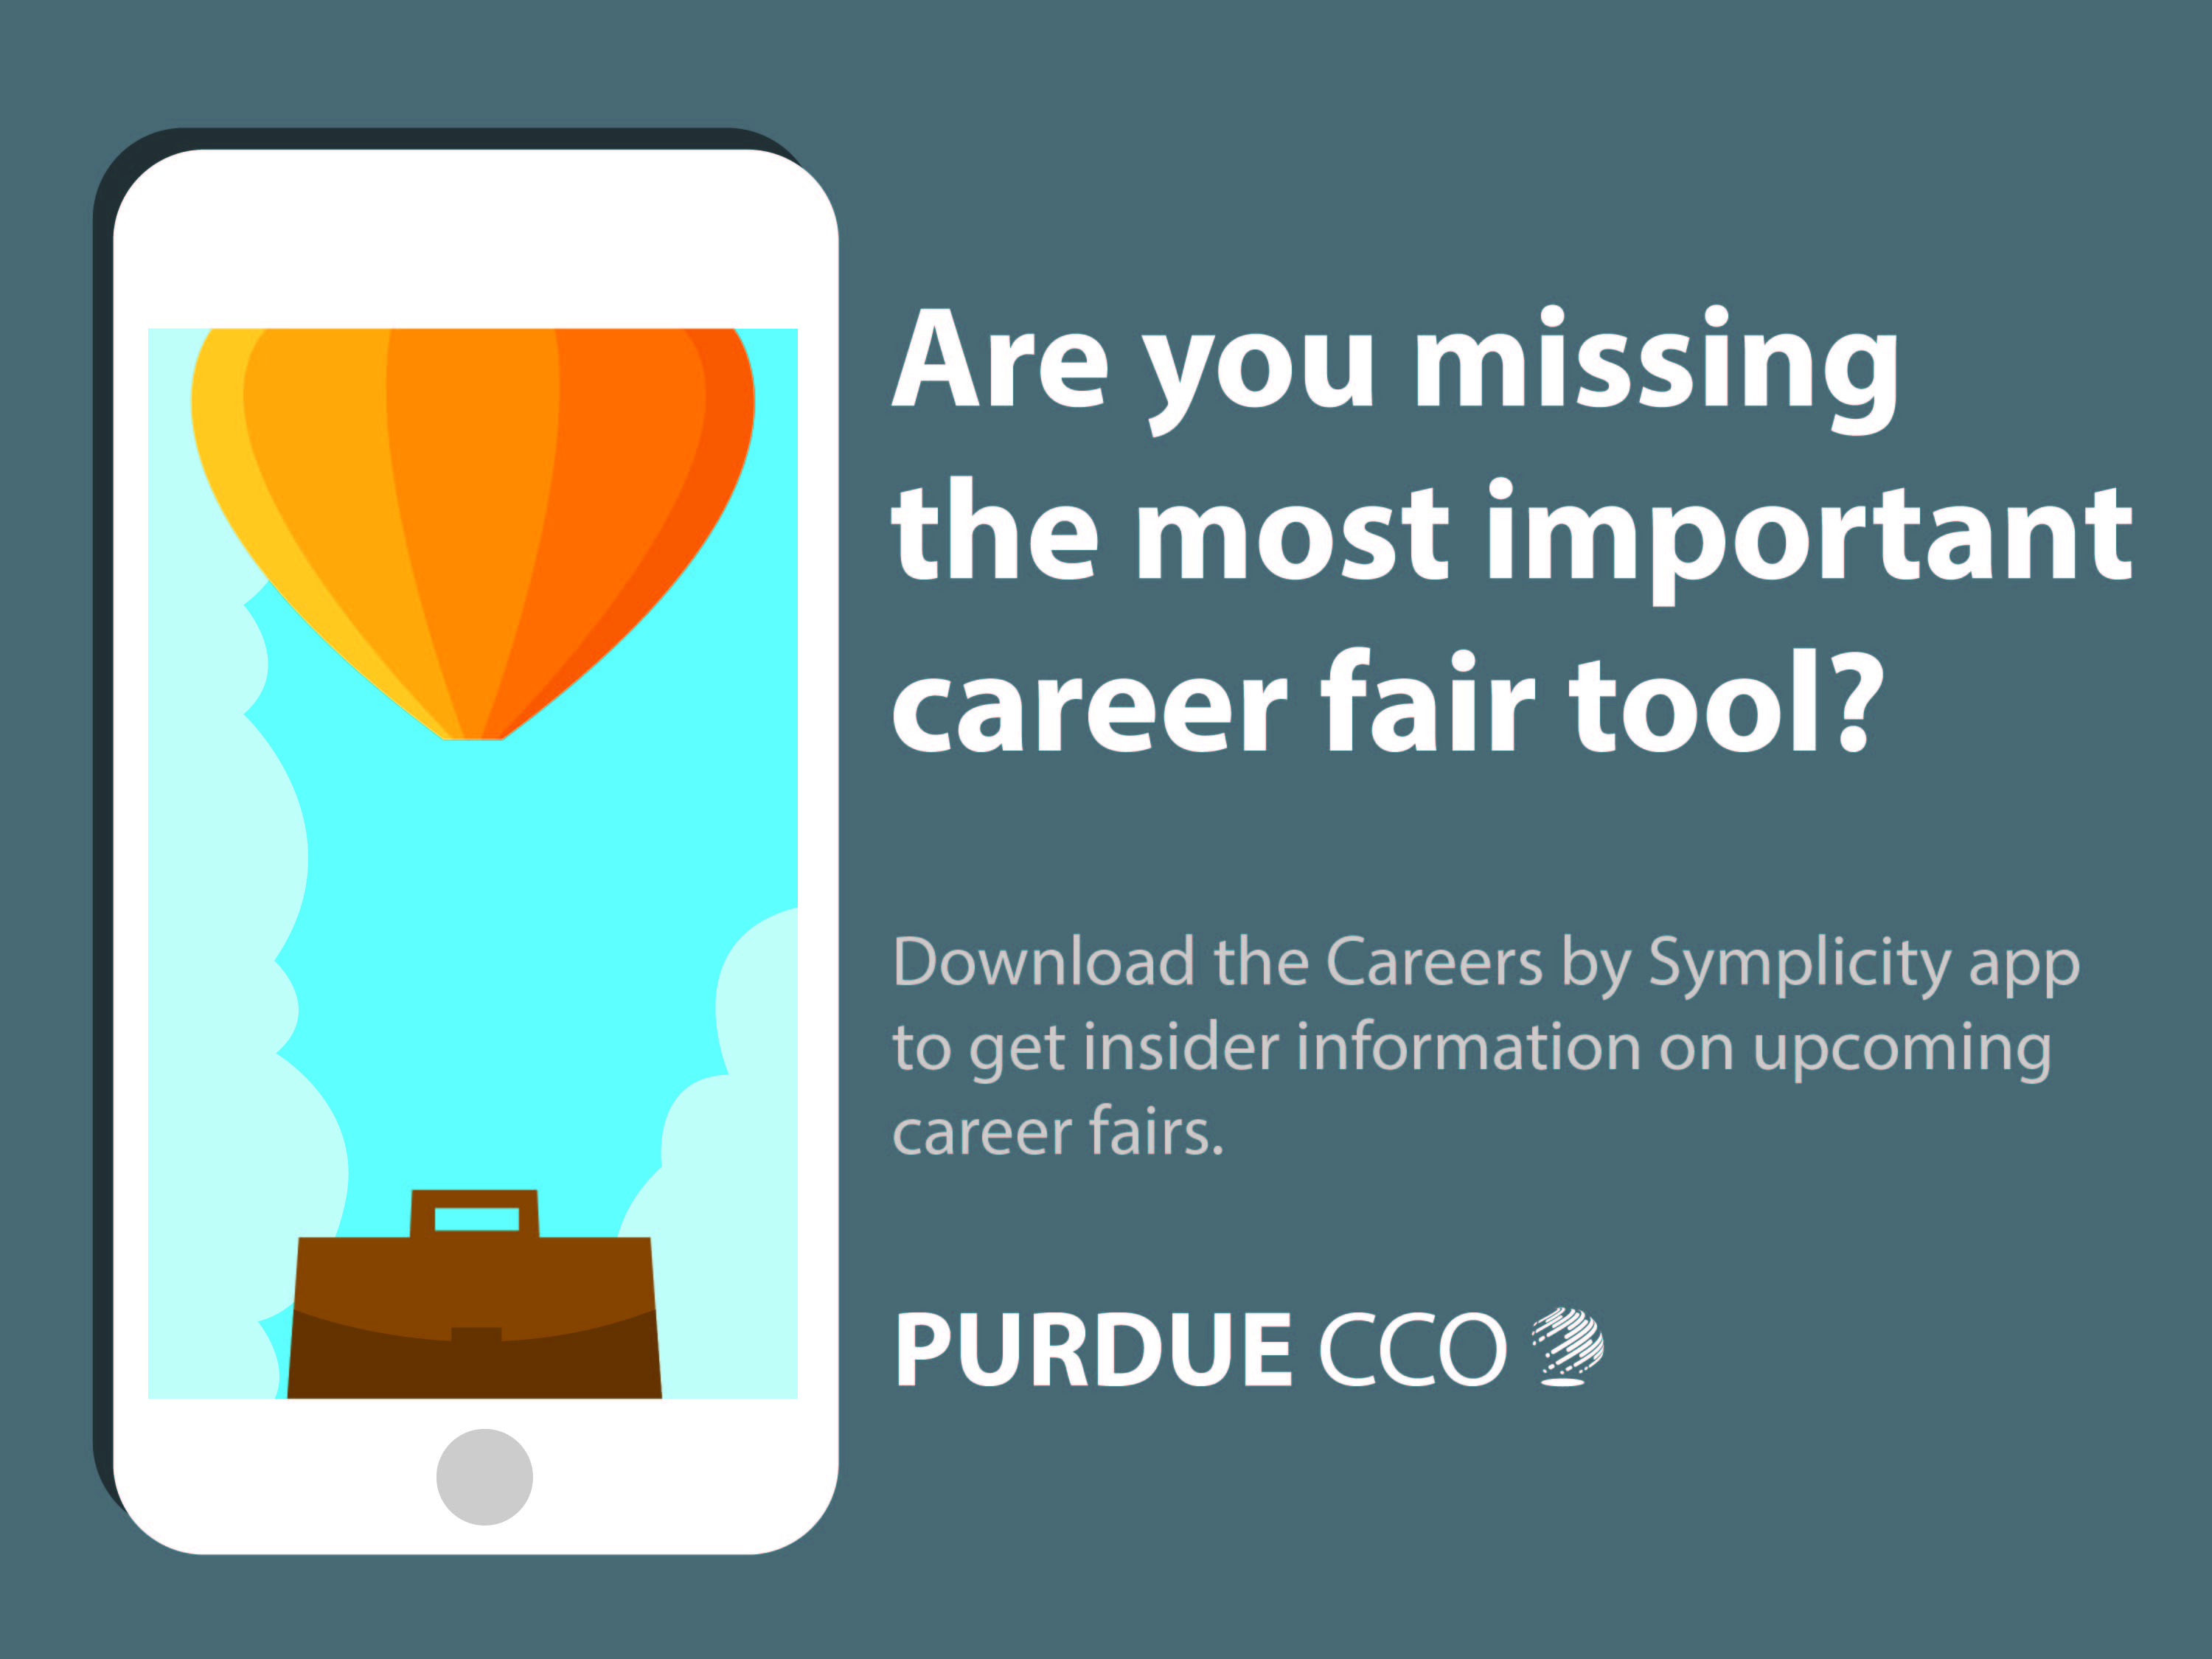 to to prepare for the upcoming career fairs purdue app promo marquee corrected 01